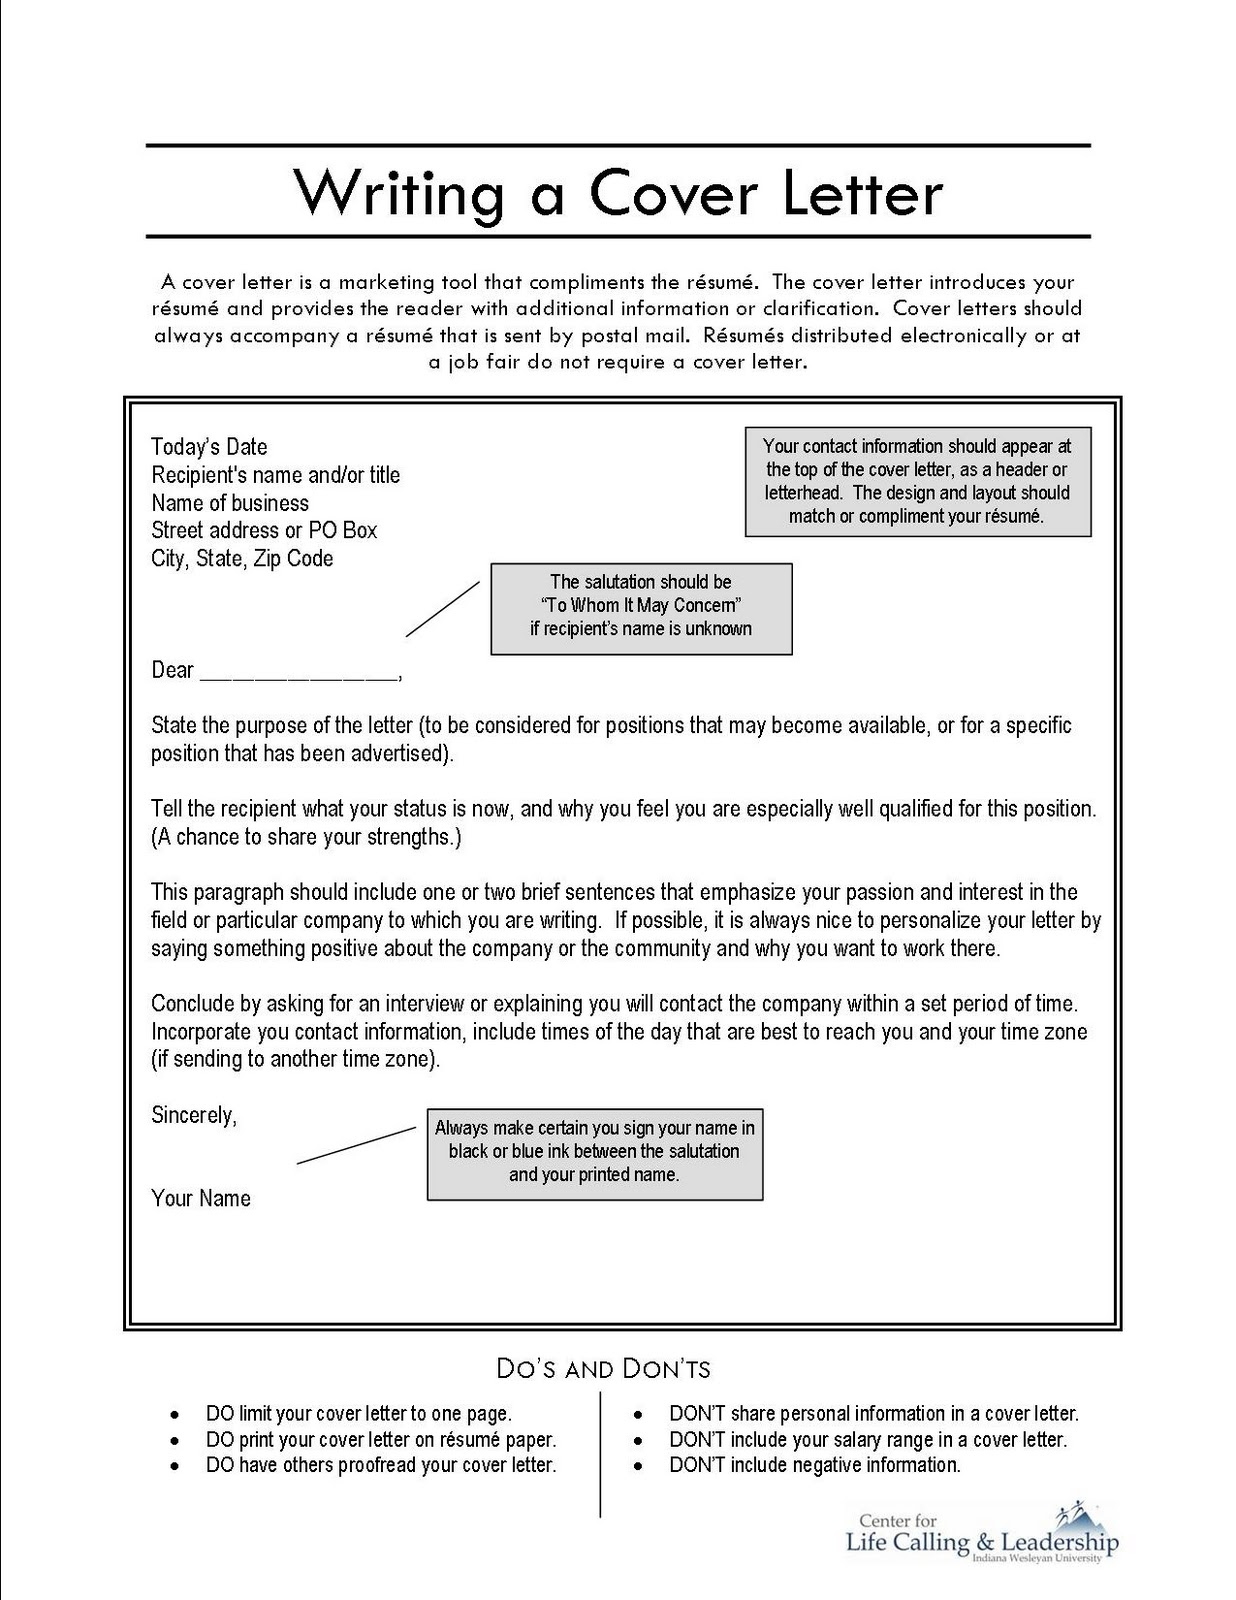 Cover Letter Sample With Salary Requirements Cover Letter Salary